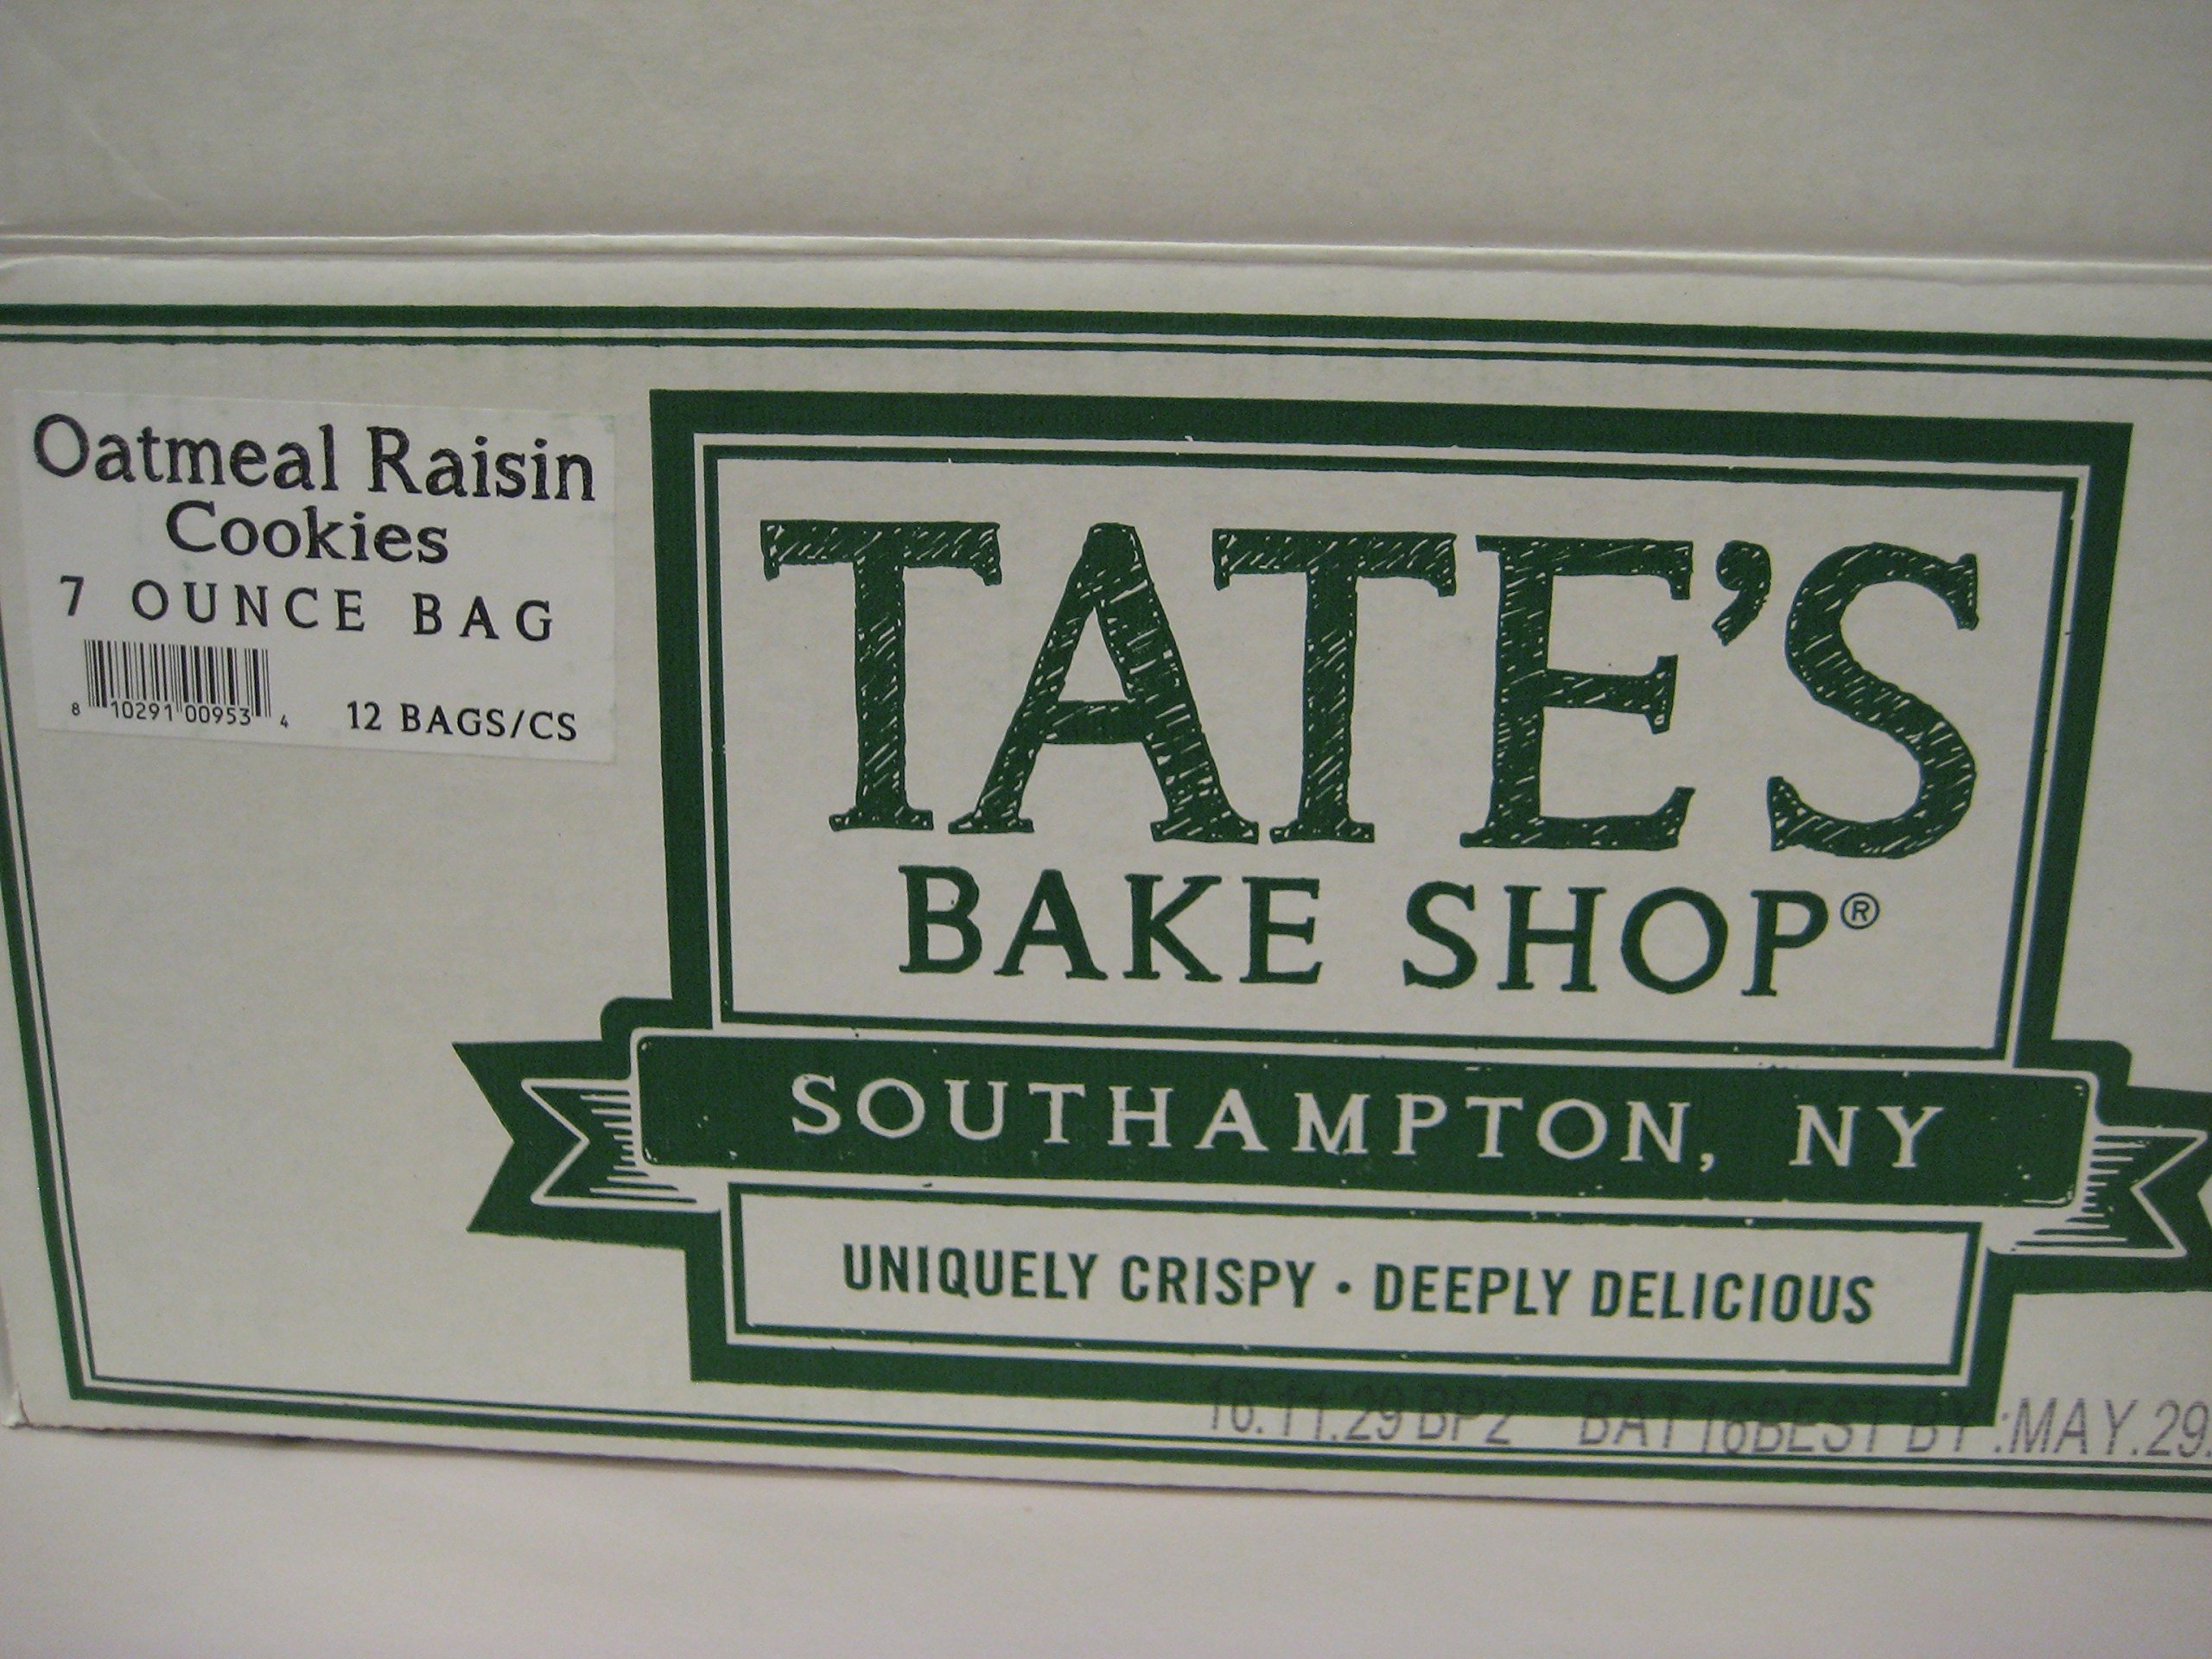 Tate's Bake Shop Oatmeal Raisin Cookies, Sold By The Case. (12)- 7oz Bags in each case. Made in Southampton N.Y